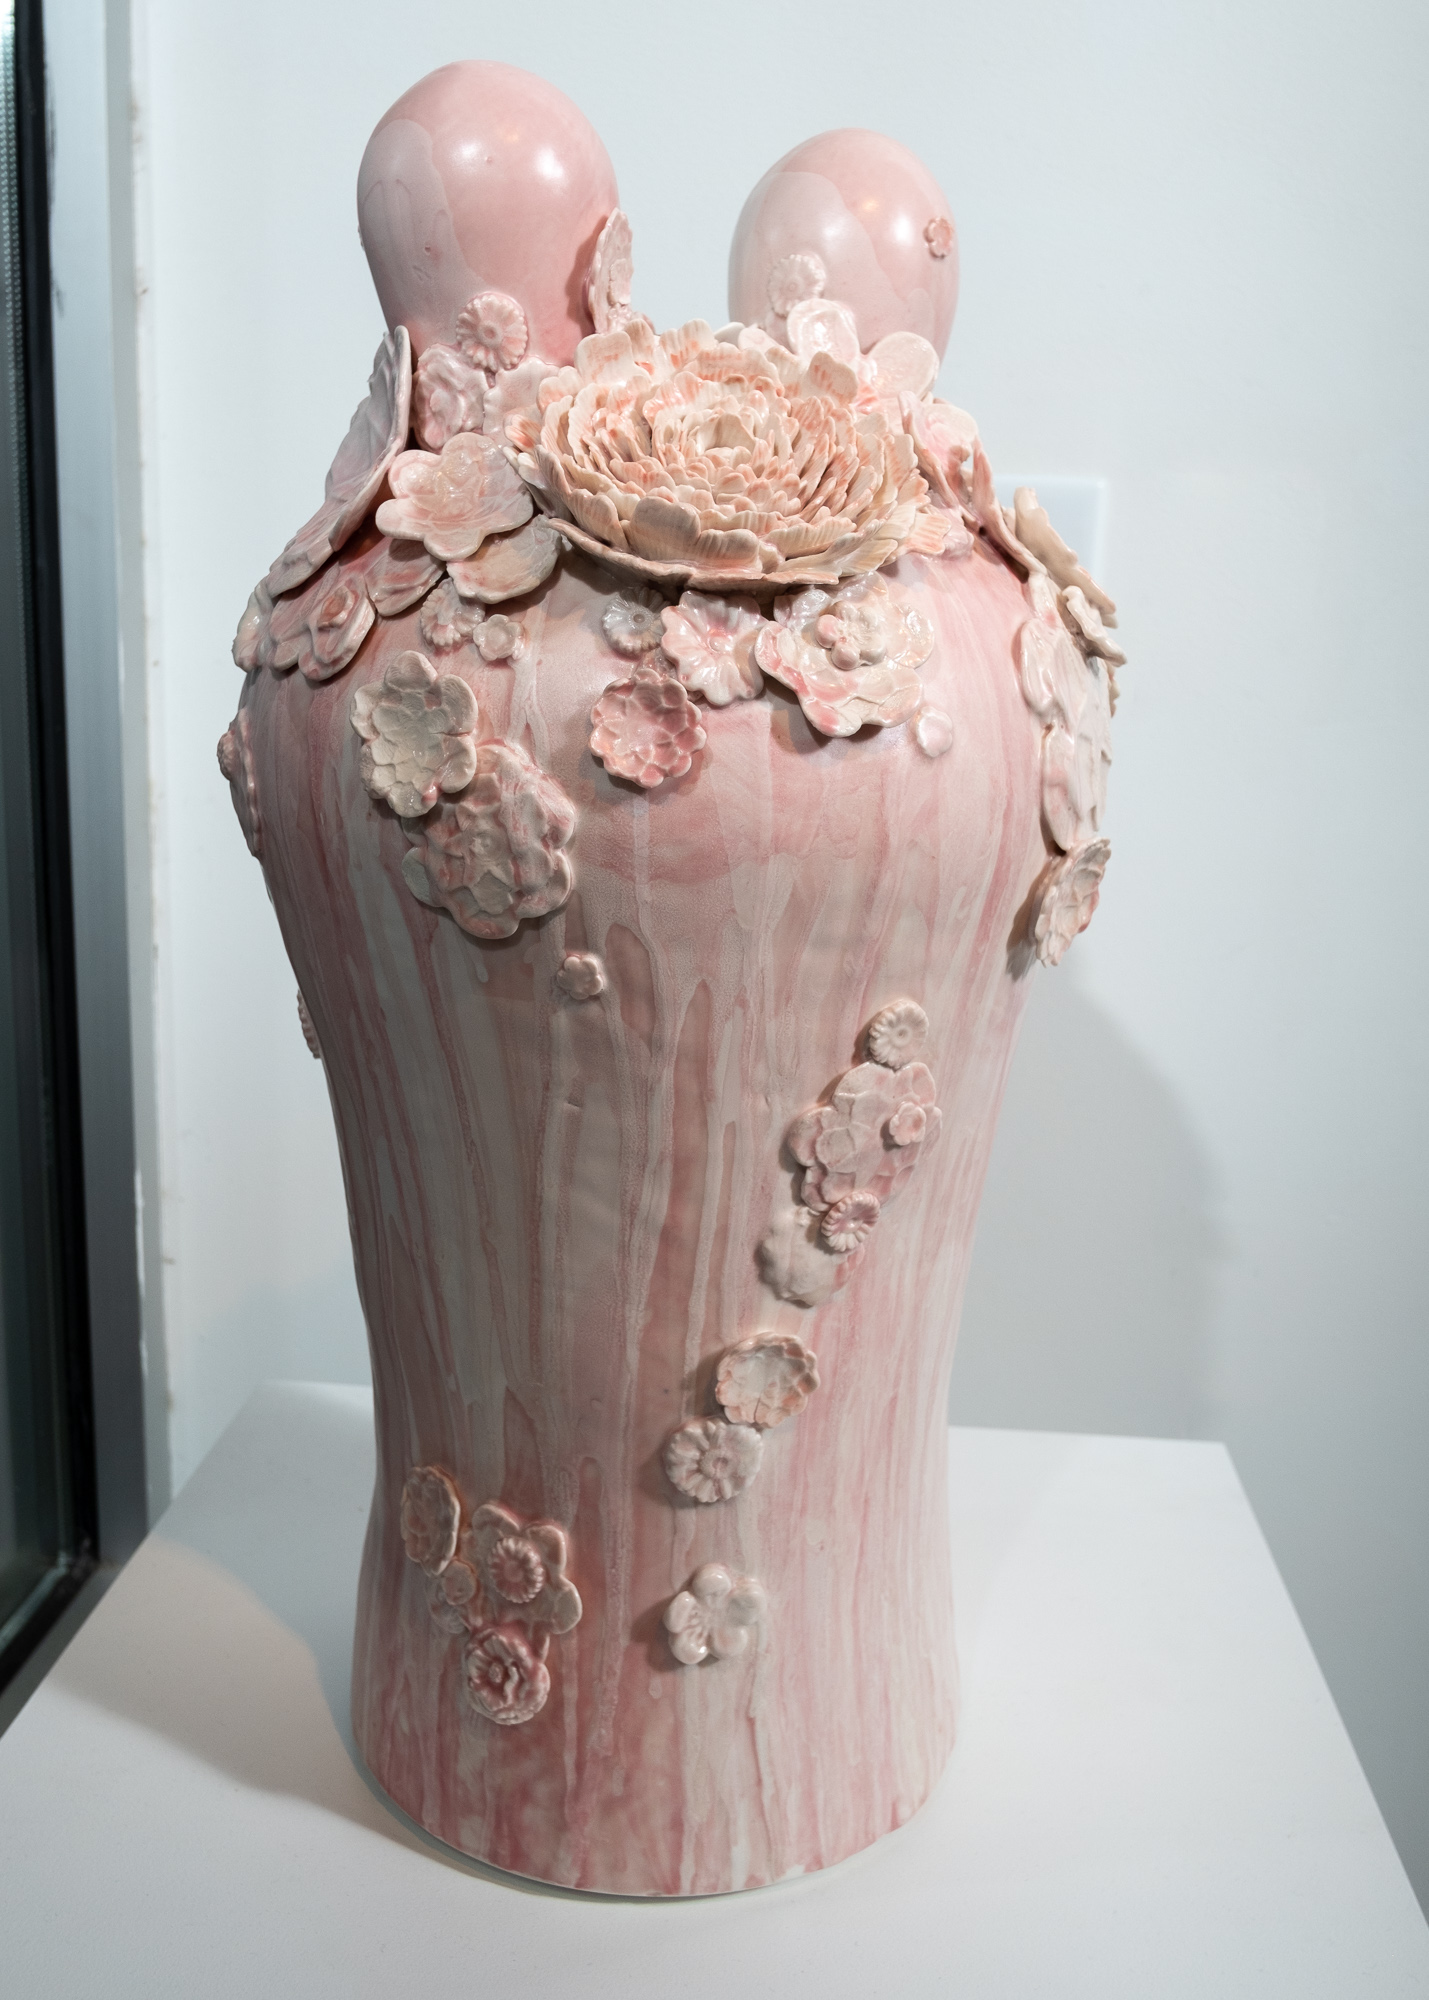 Hanazume (Packed Florals) with Two Ears   Wheel-thrown and handbuilt porcelain with press-molded sprigs from three-dimensional model prints and hand-modelled florals, glaze  21 x 11 x 11 inches VZI 008G